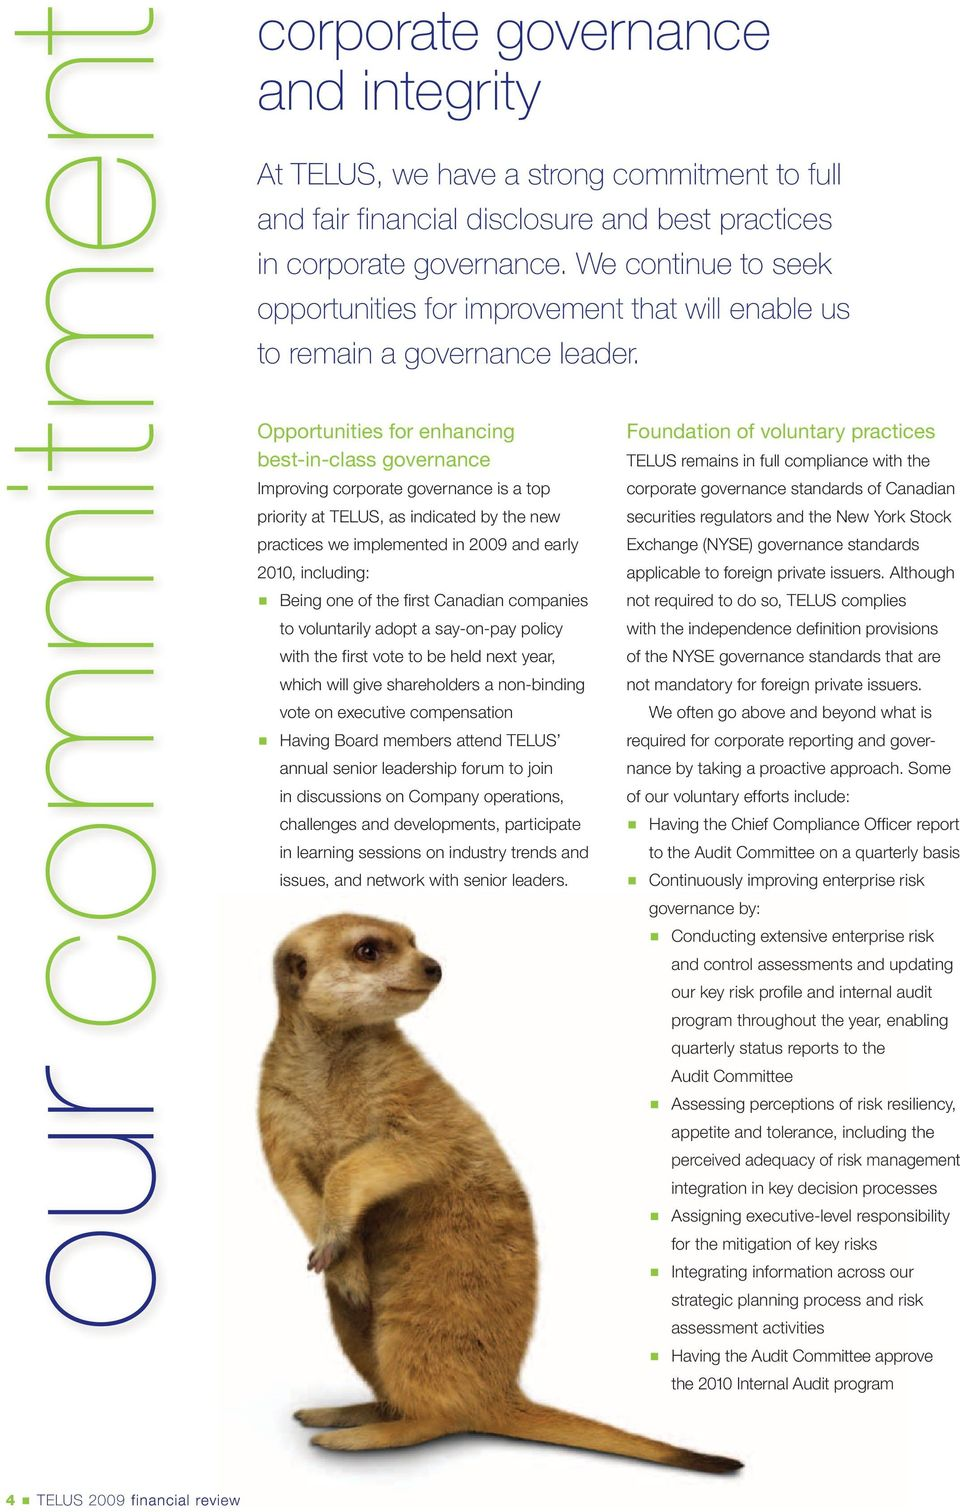 Opportunities for enhancing best-in-class governance Improving corporate governance is a top priority at TELUS, as indicated by the new practices we implemented in 2009 and early 2010, including: